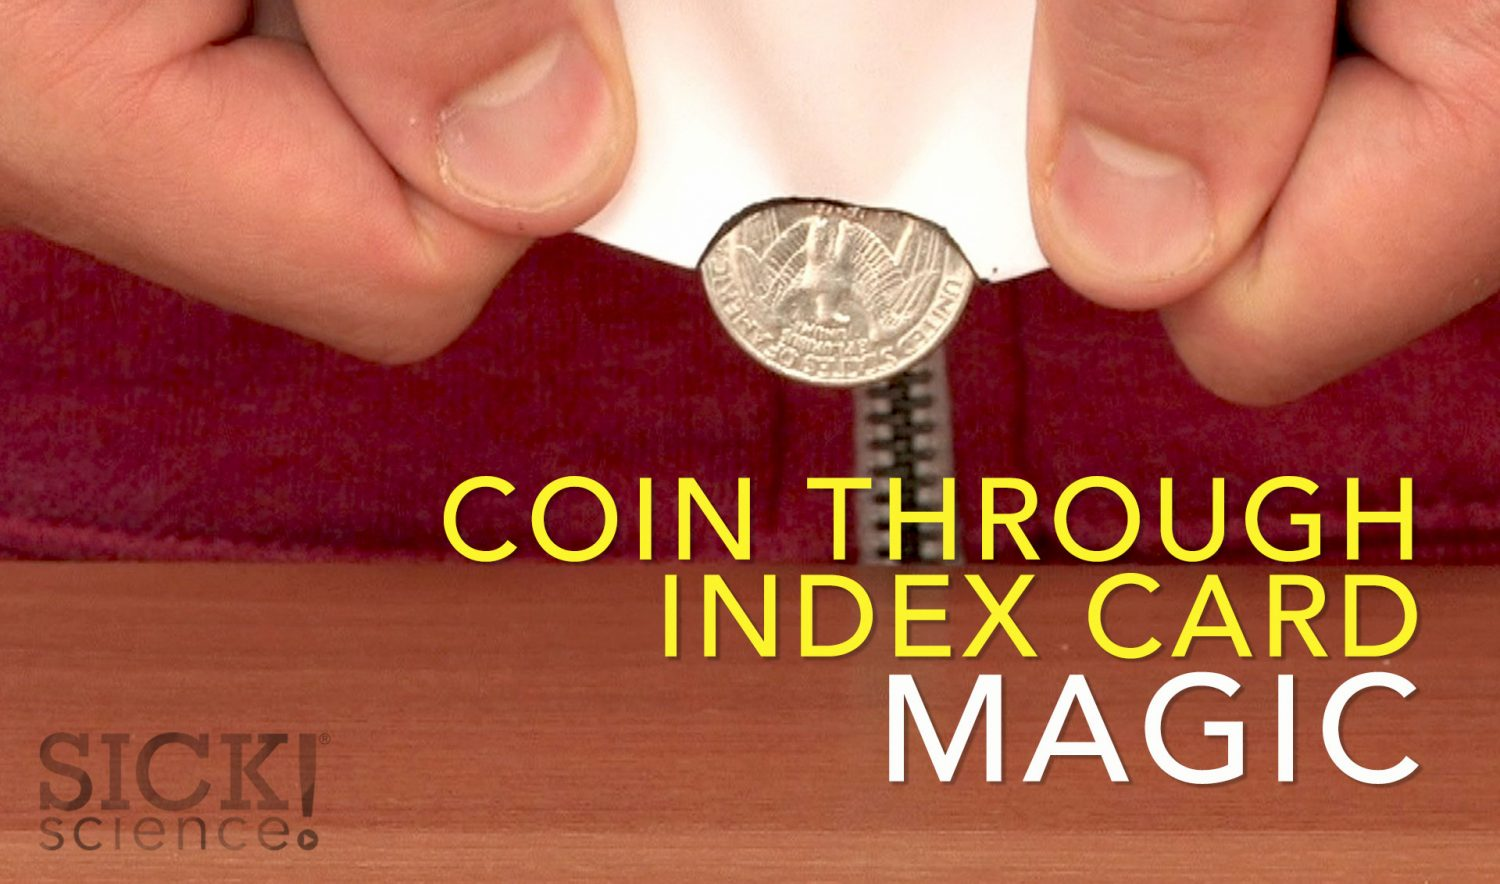 Coin Through Index Card Magic Sick Science 053